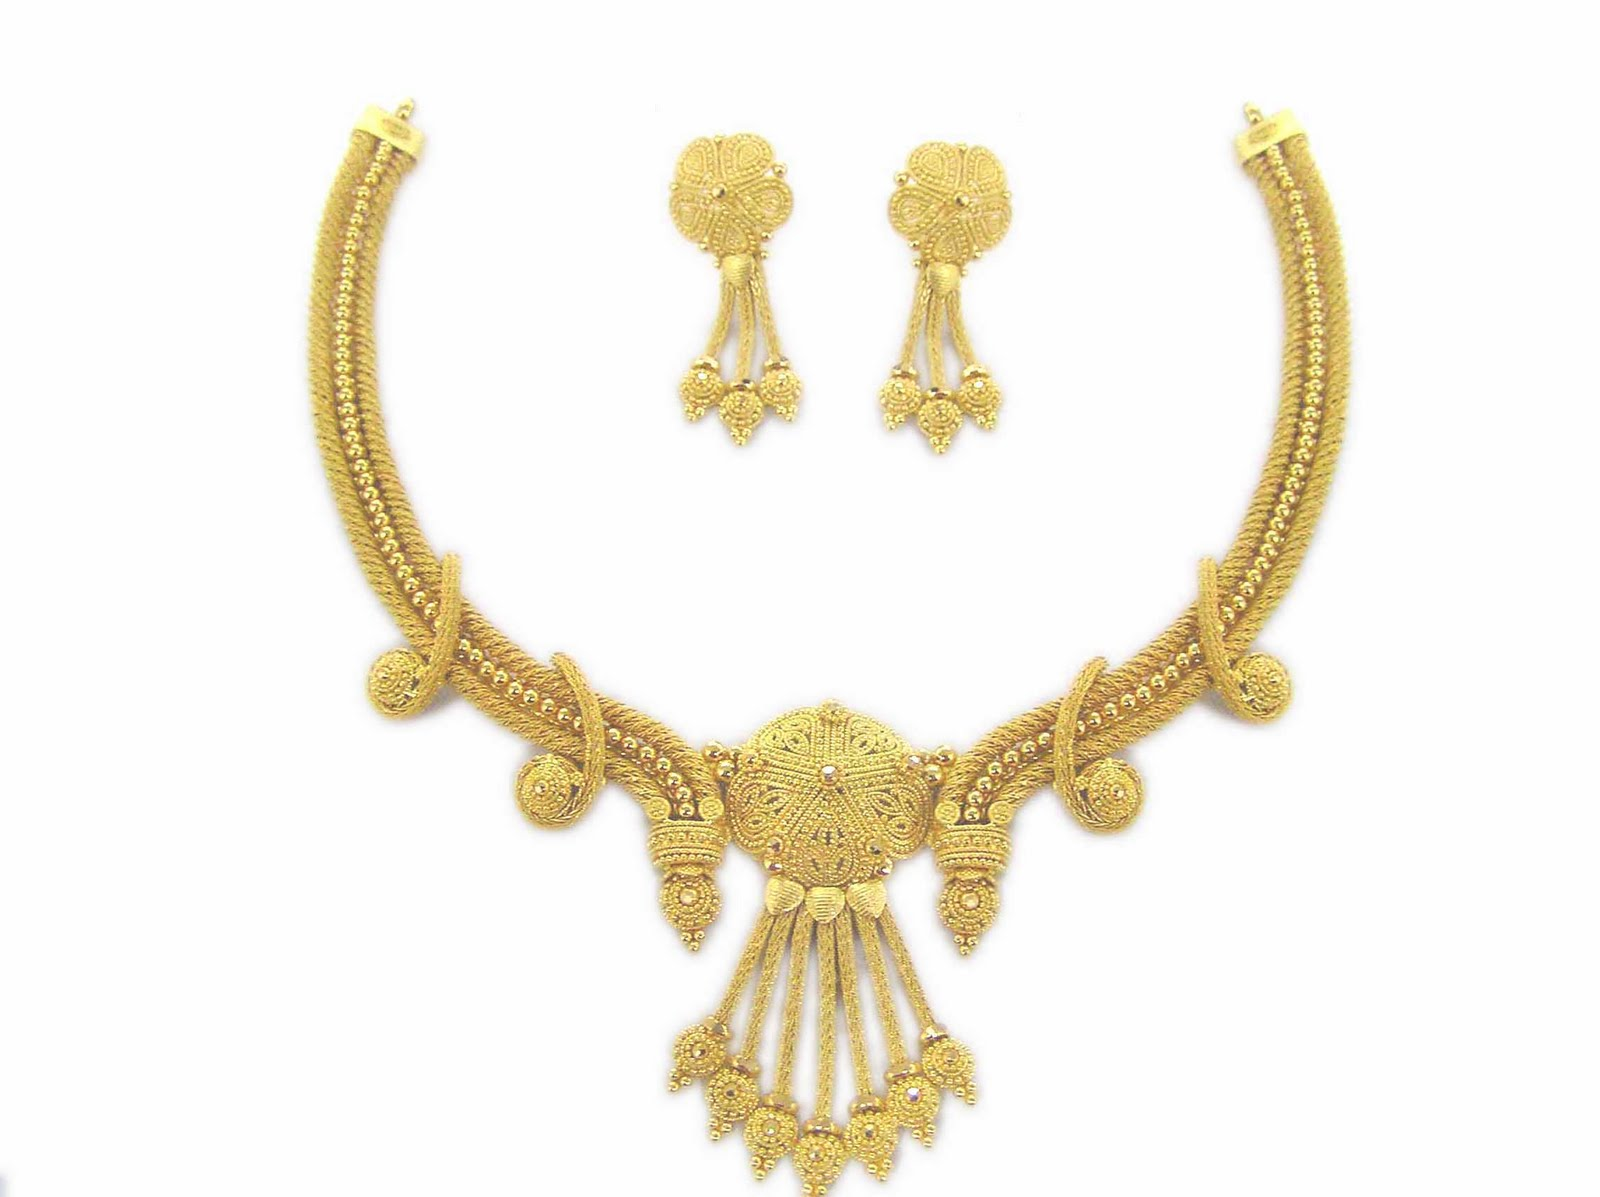 jewelry for women: Gold Necklaces New Models